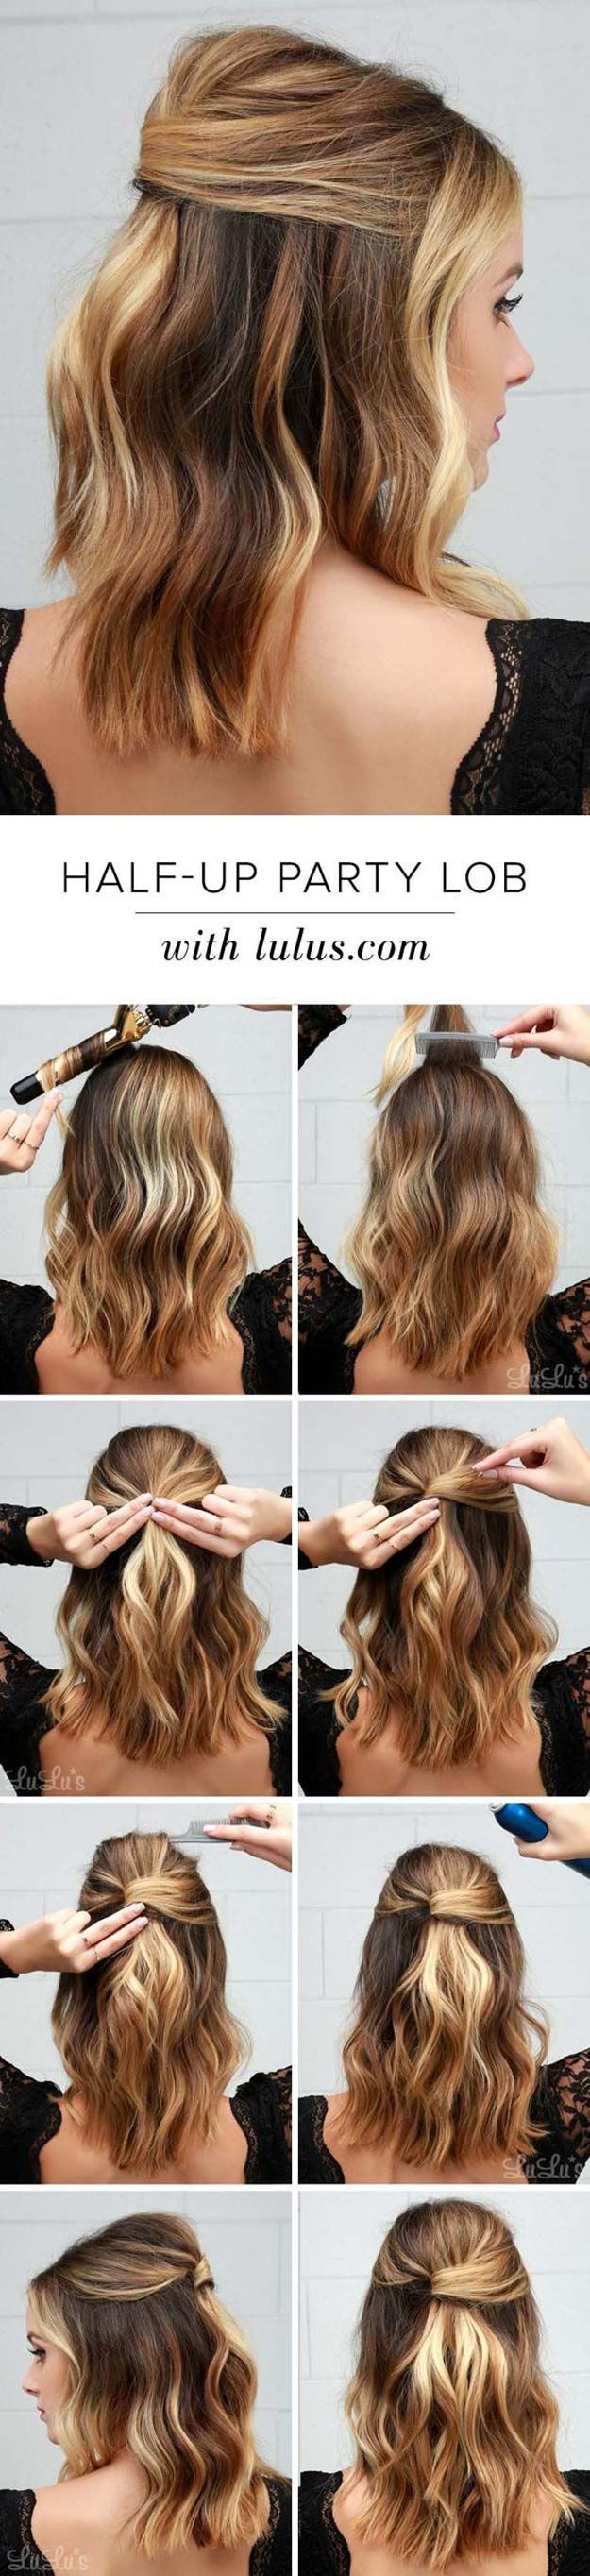 best hair and beauty images on pinterest hairstyle ideas